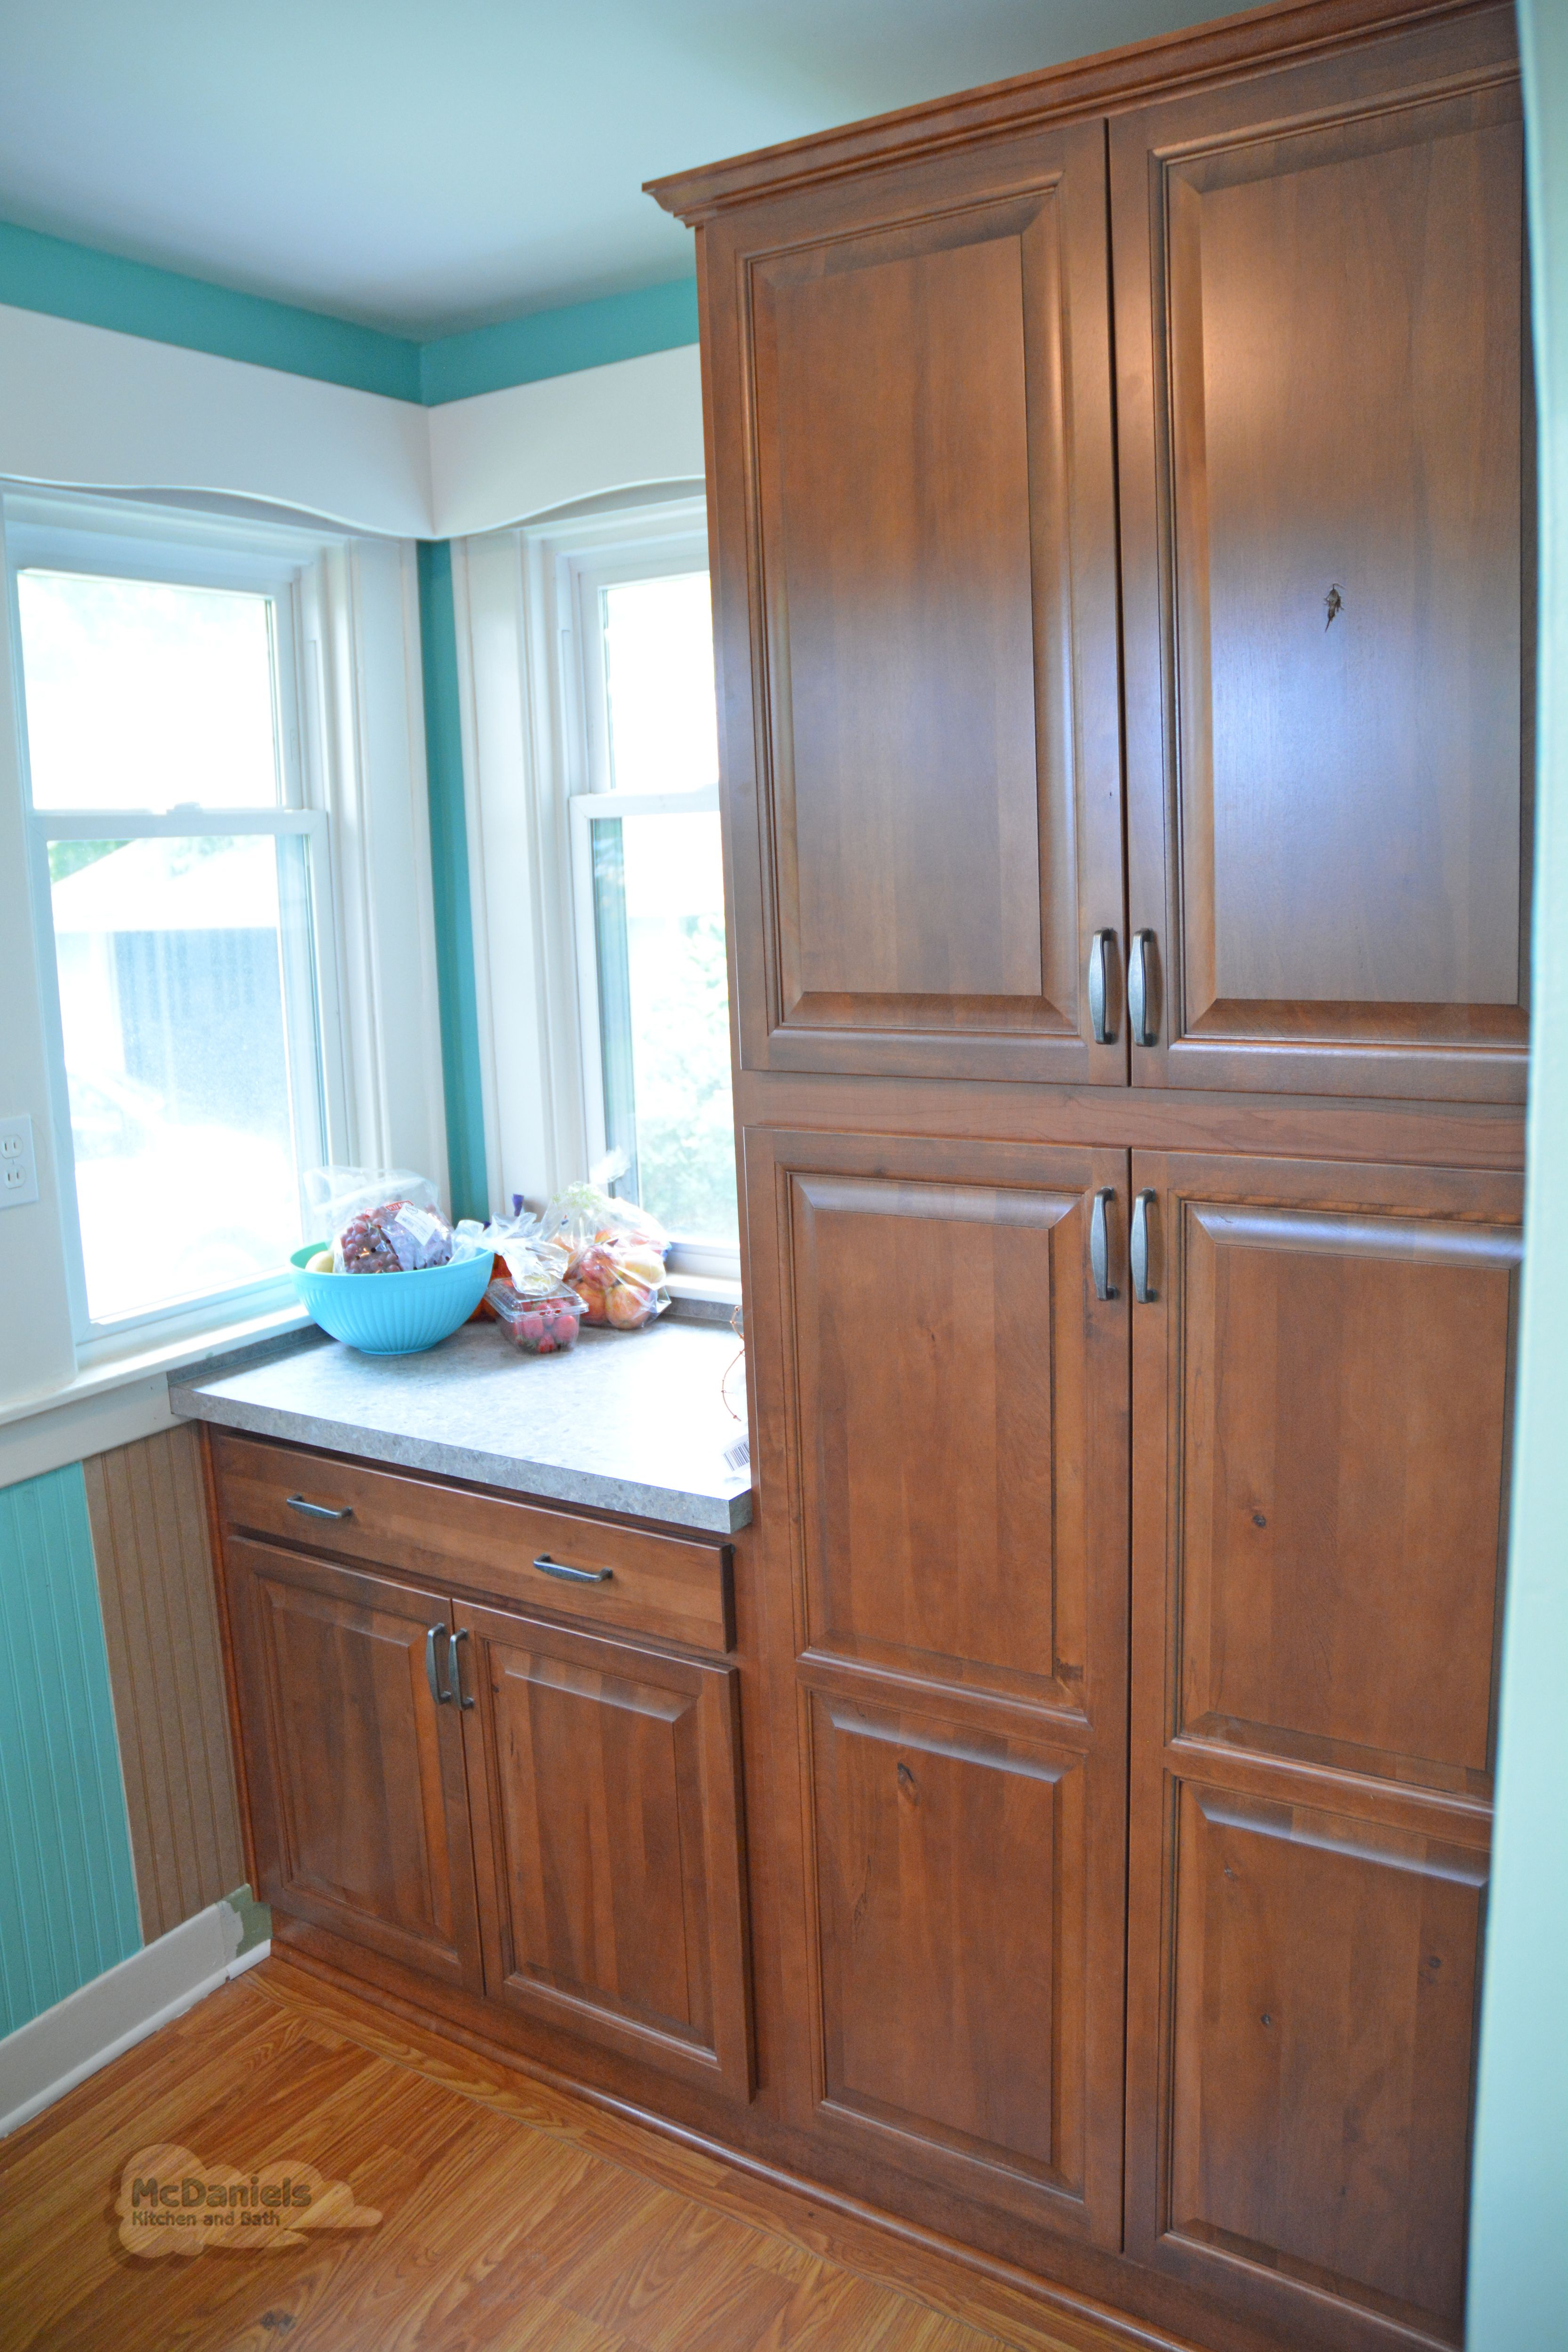 Cabinet Hardware Accents The Style And Finish Of Your Kitchencabinets In This Lansingmi Kitchendesign Richelieuhard In 2020 Design Tall Cabinet Storage Warm Wood